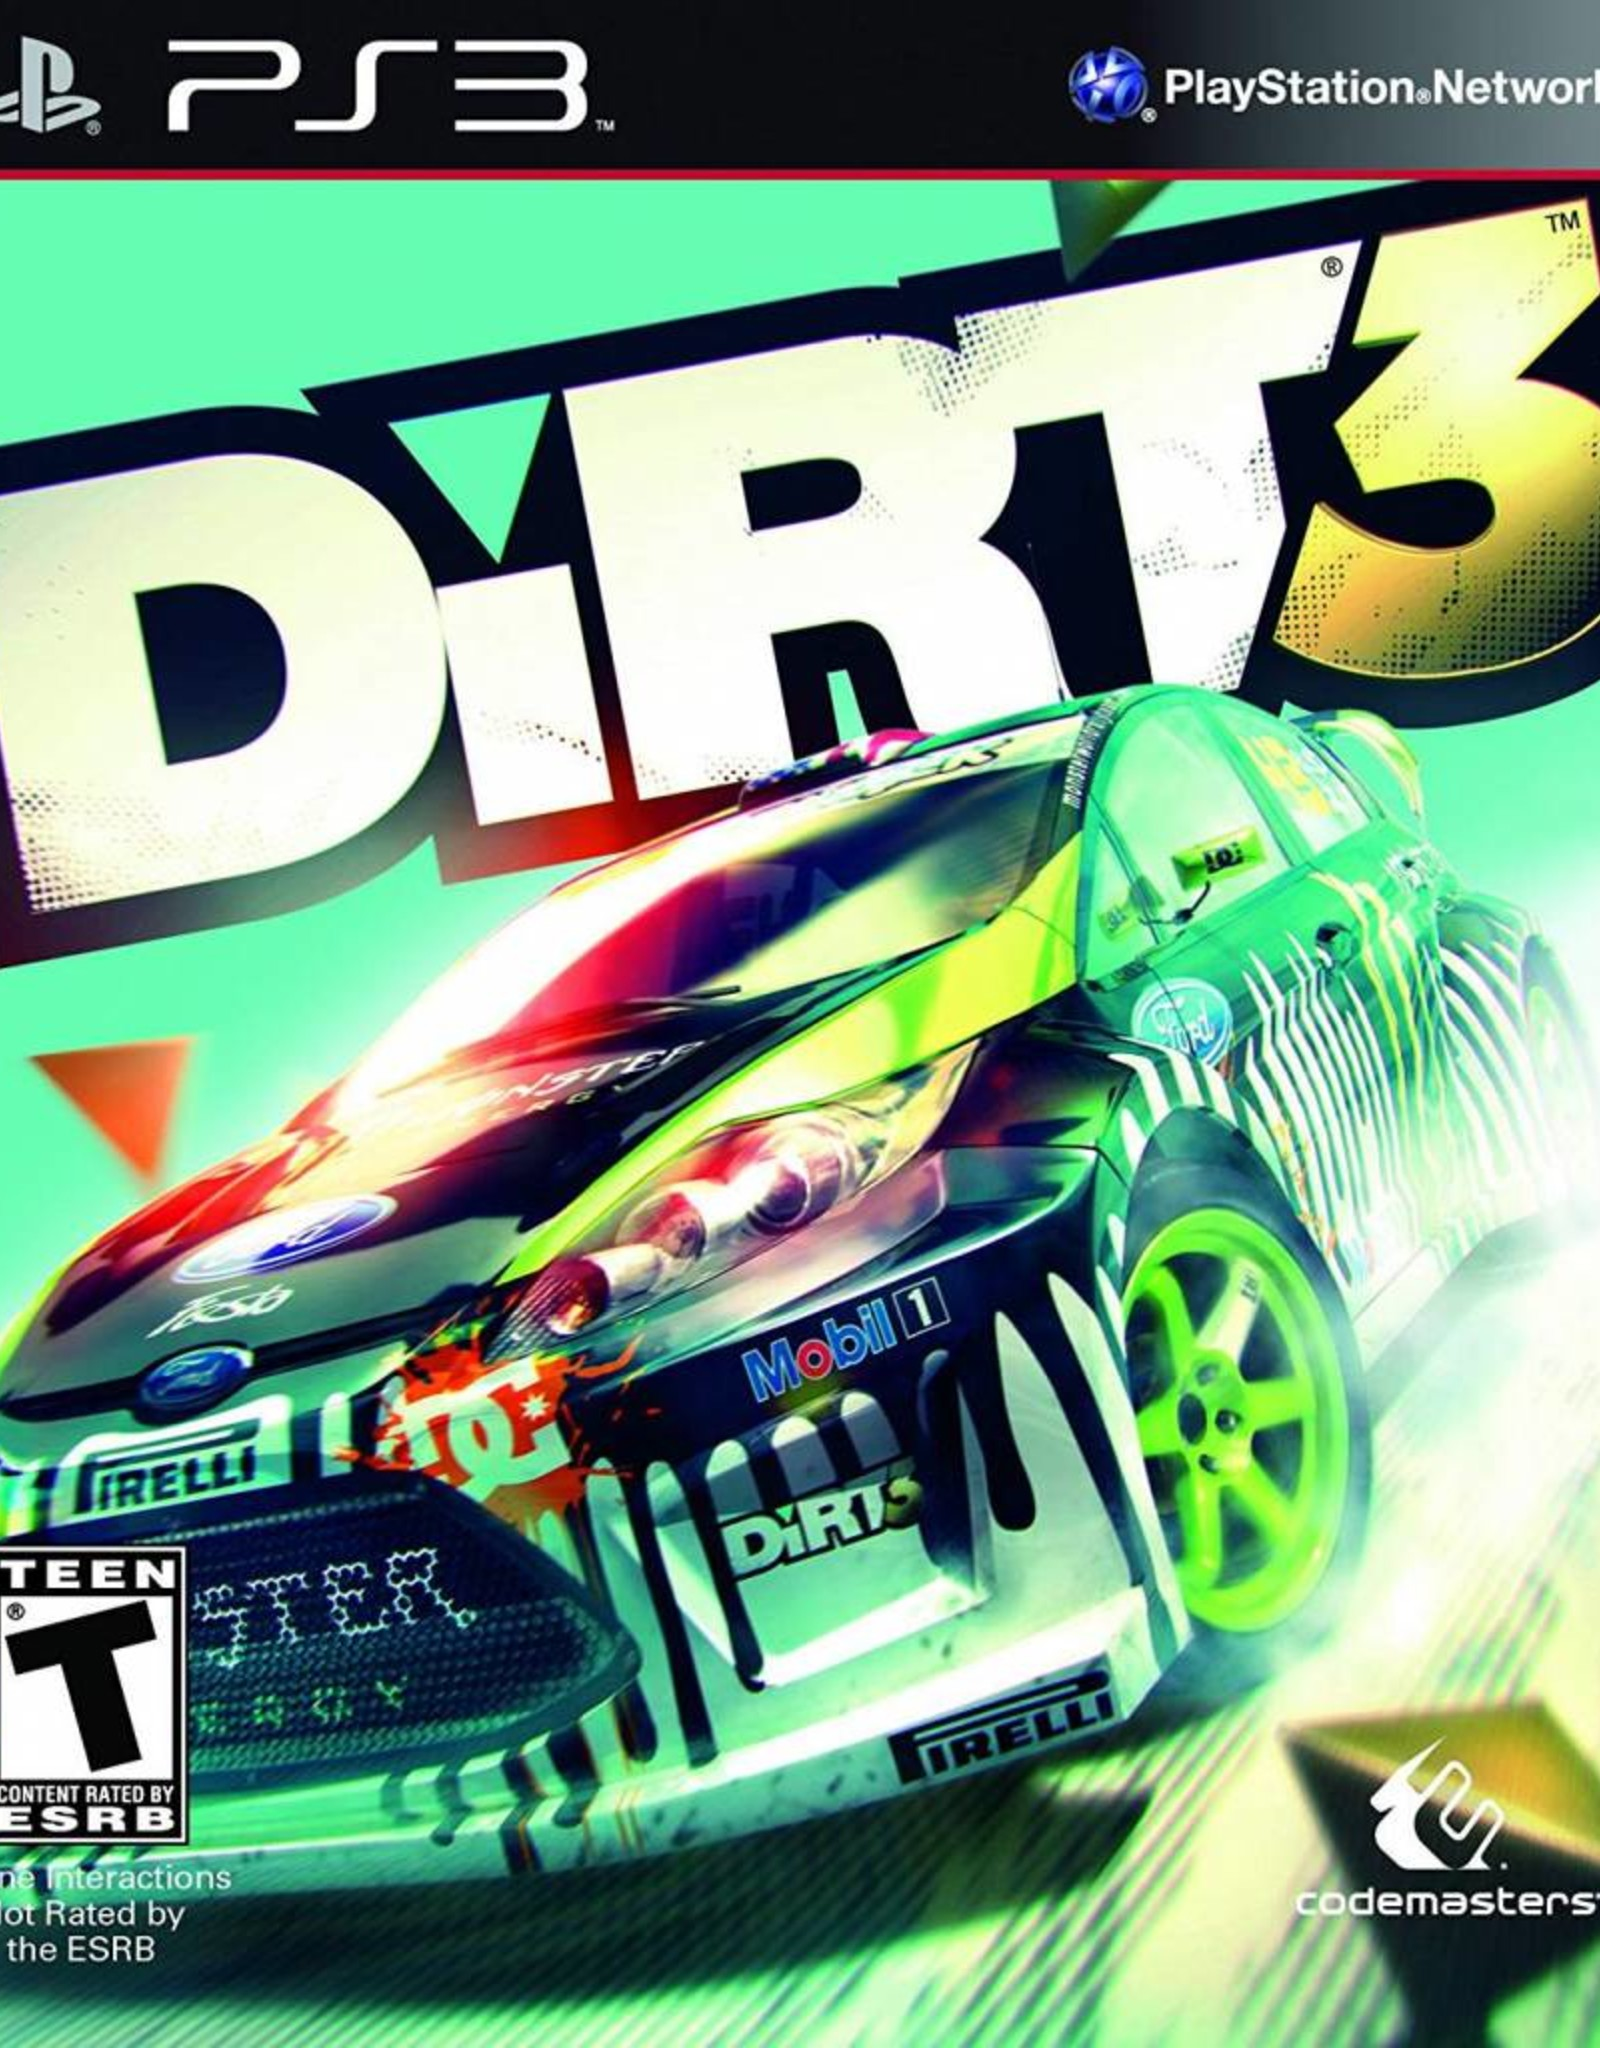 DiRT 3 - PS3 PrePlayed